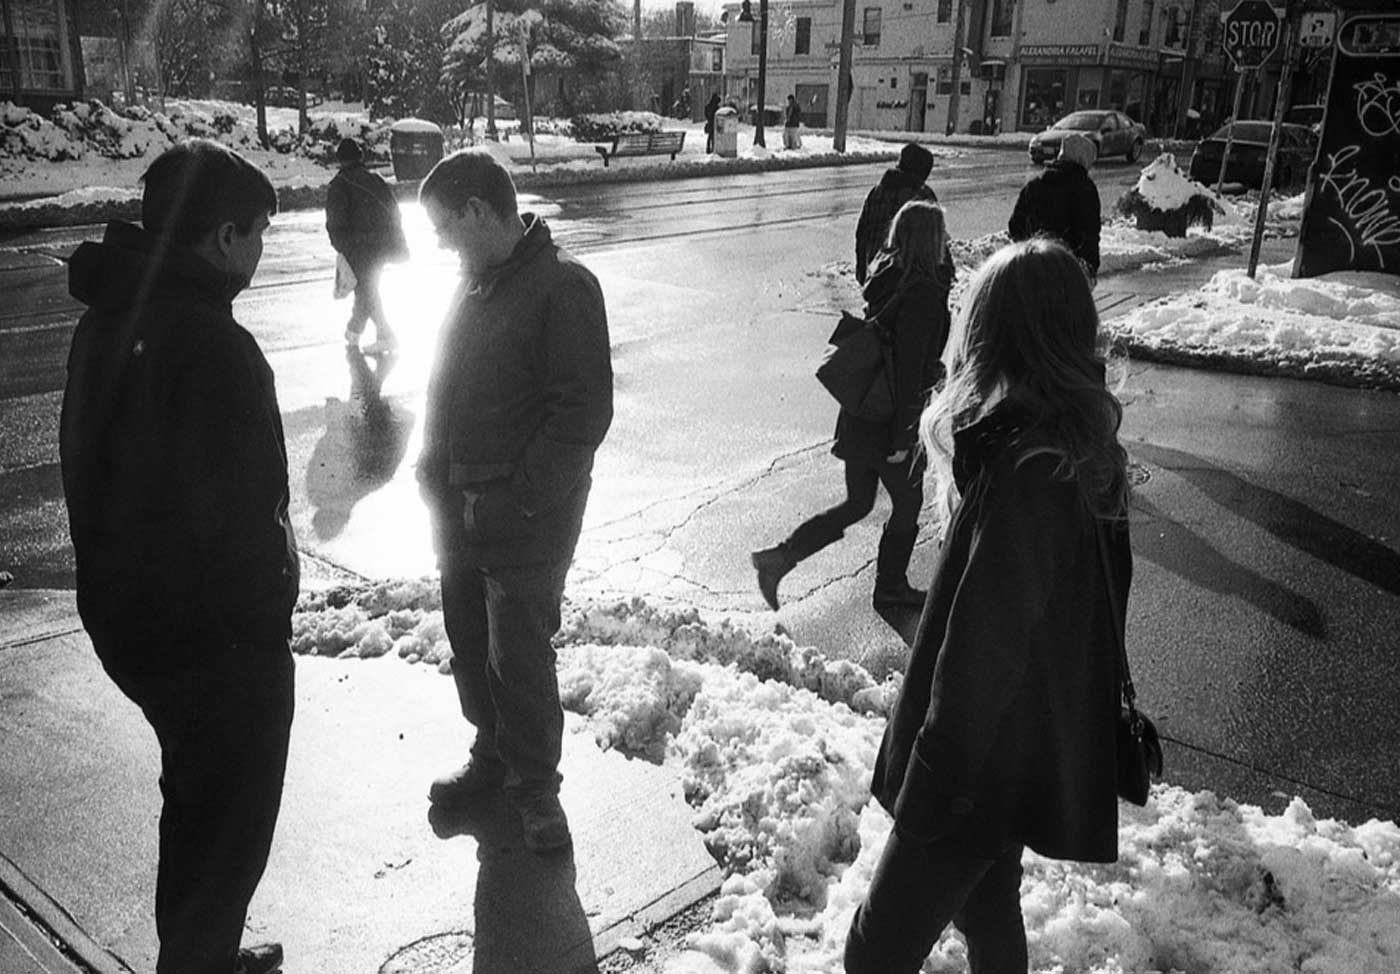 Members of the Agency Dominion team on the sidewalk in the winter time